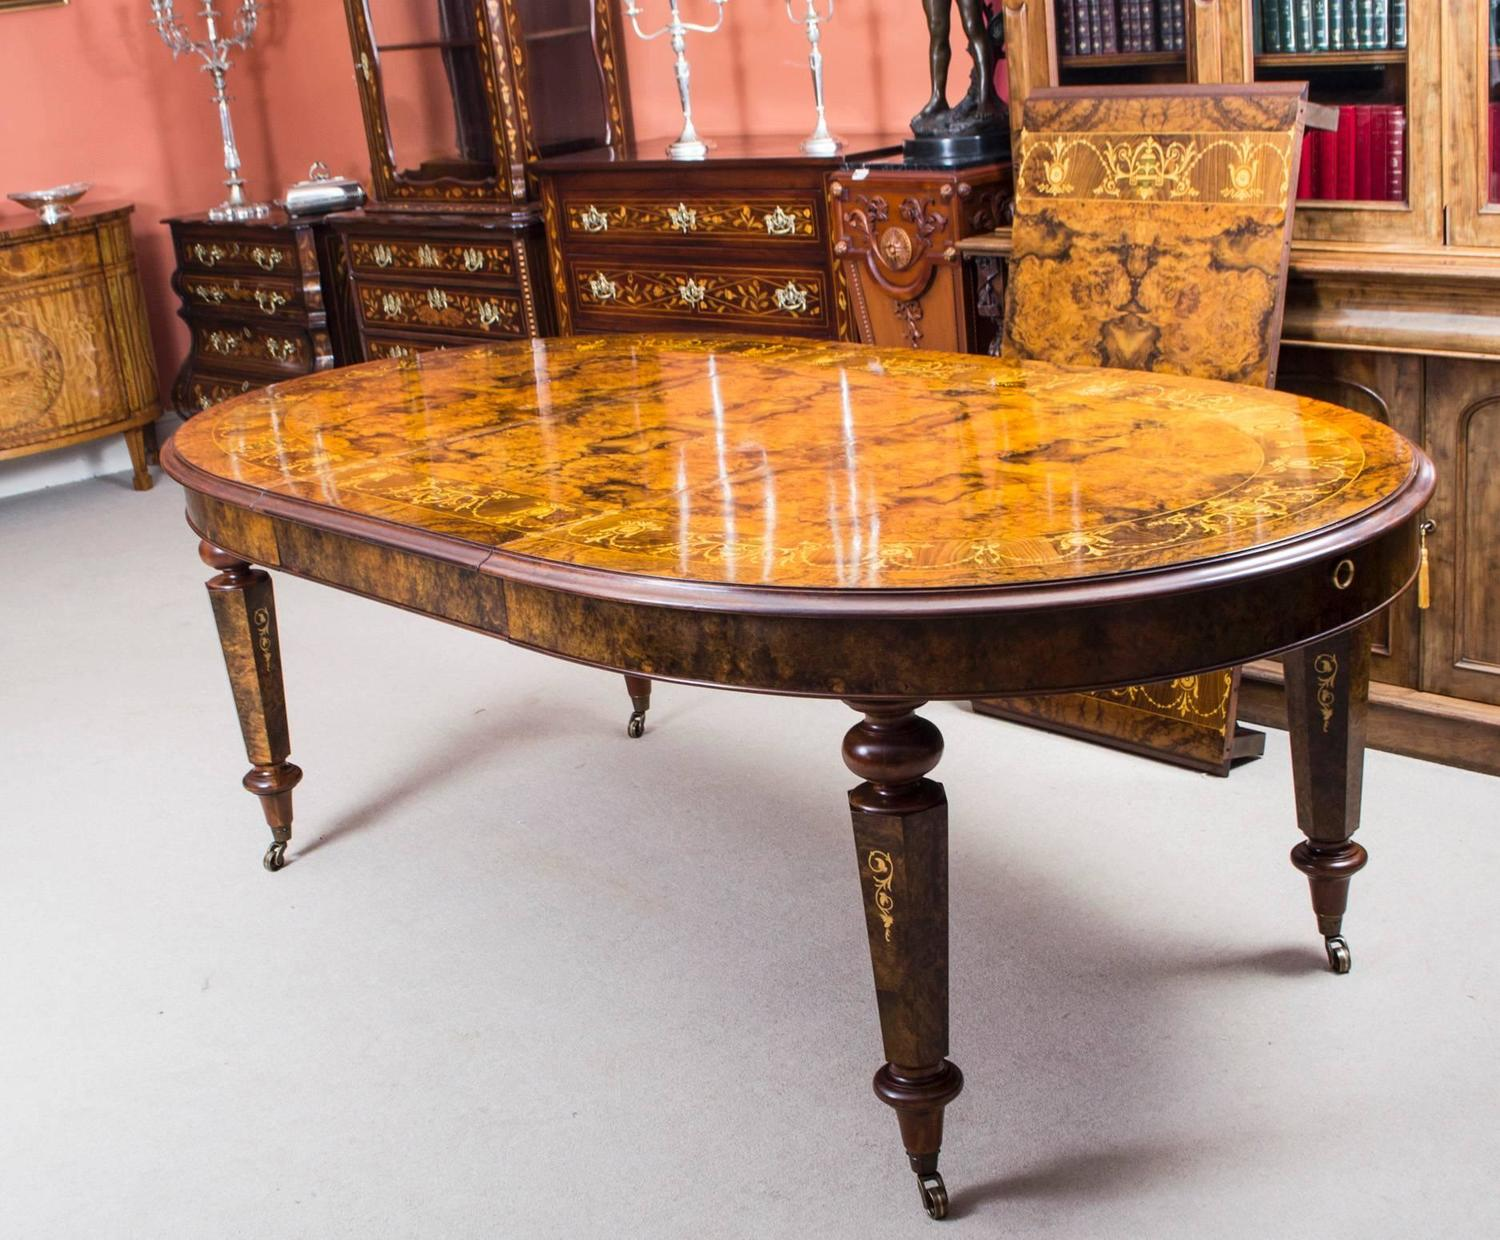 Stunning burr walnut 10ft oval marquetry dining table for for 5 foot dining room table